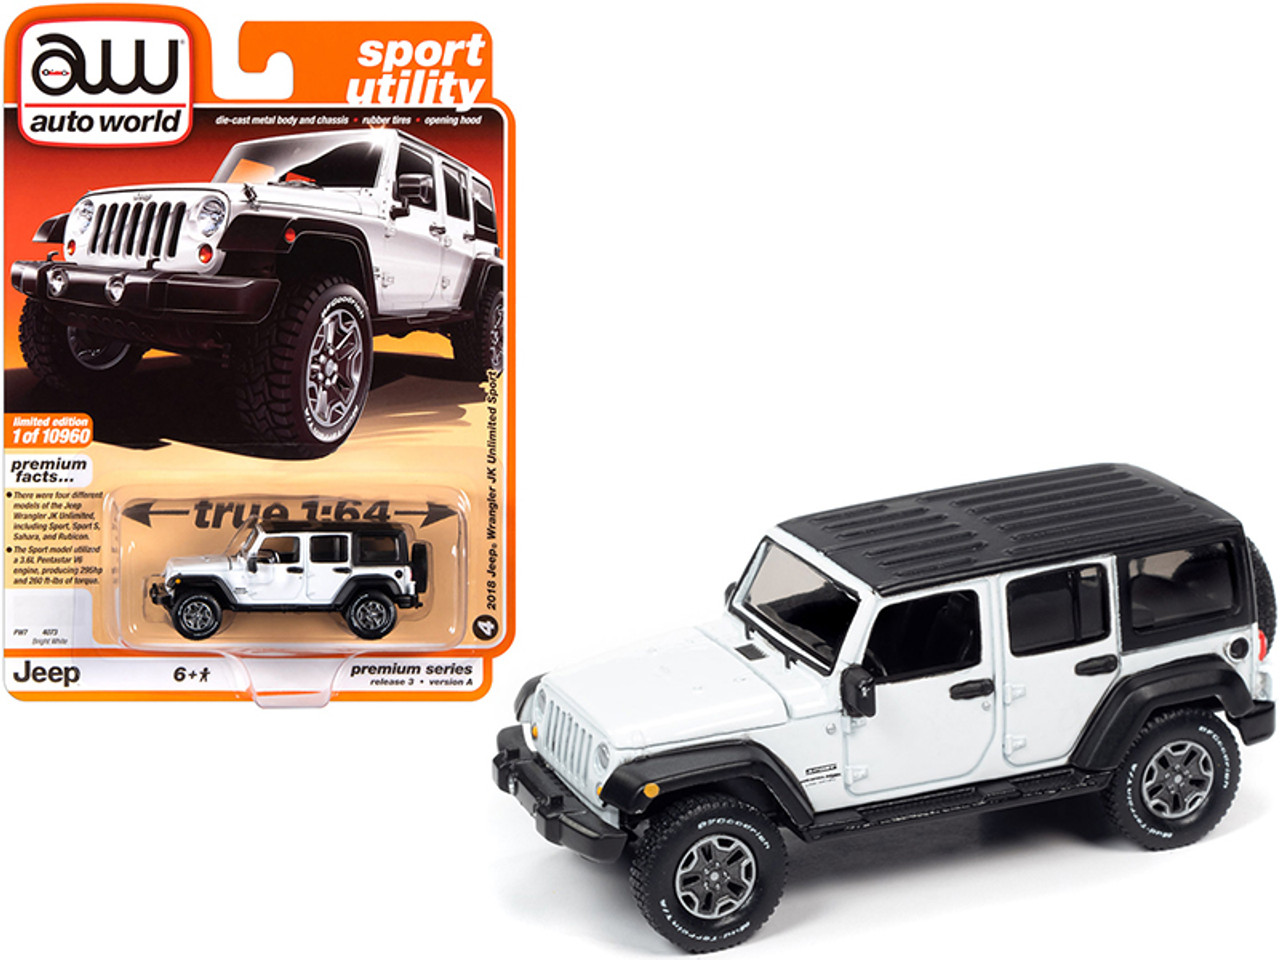 2018 Jeep Wrangler Jk Unlimited Sport 4 Door Bright White With Black Top Sport Utility Limited Edition To 10960 Pieces Worldwide 1 64 Diecast Model Car By Autoworld Livecarmodel Com